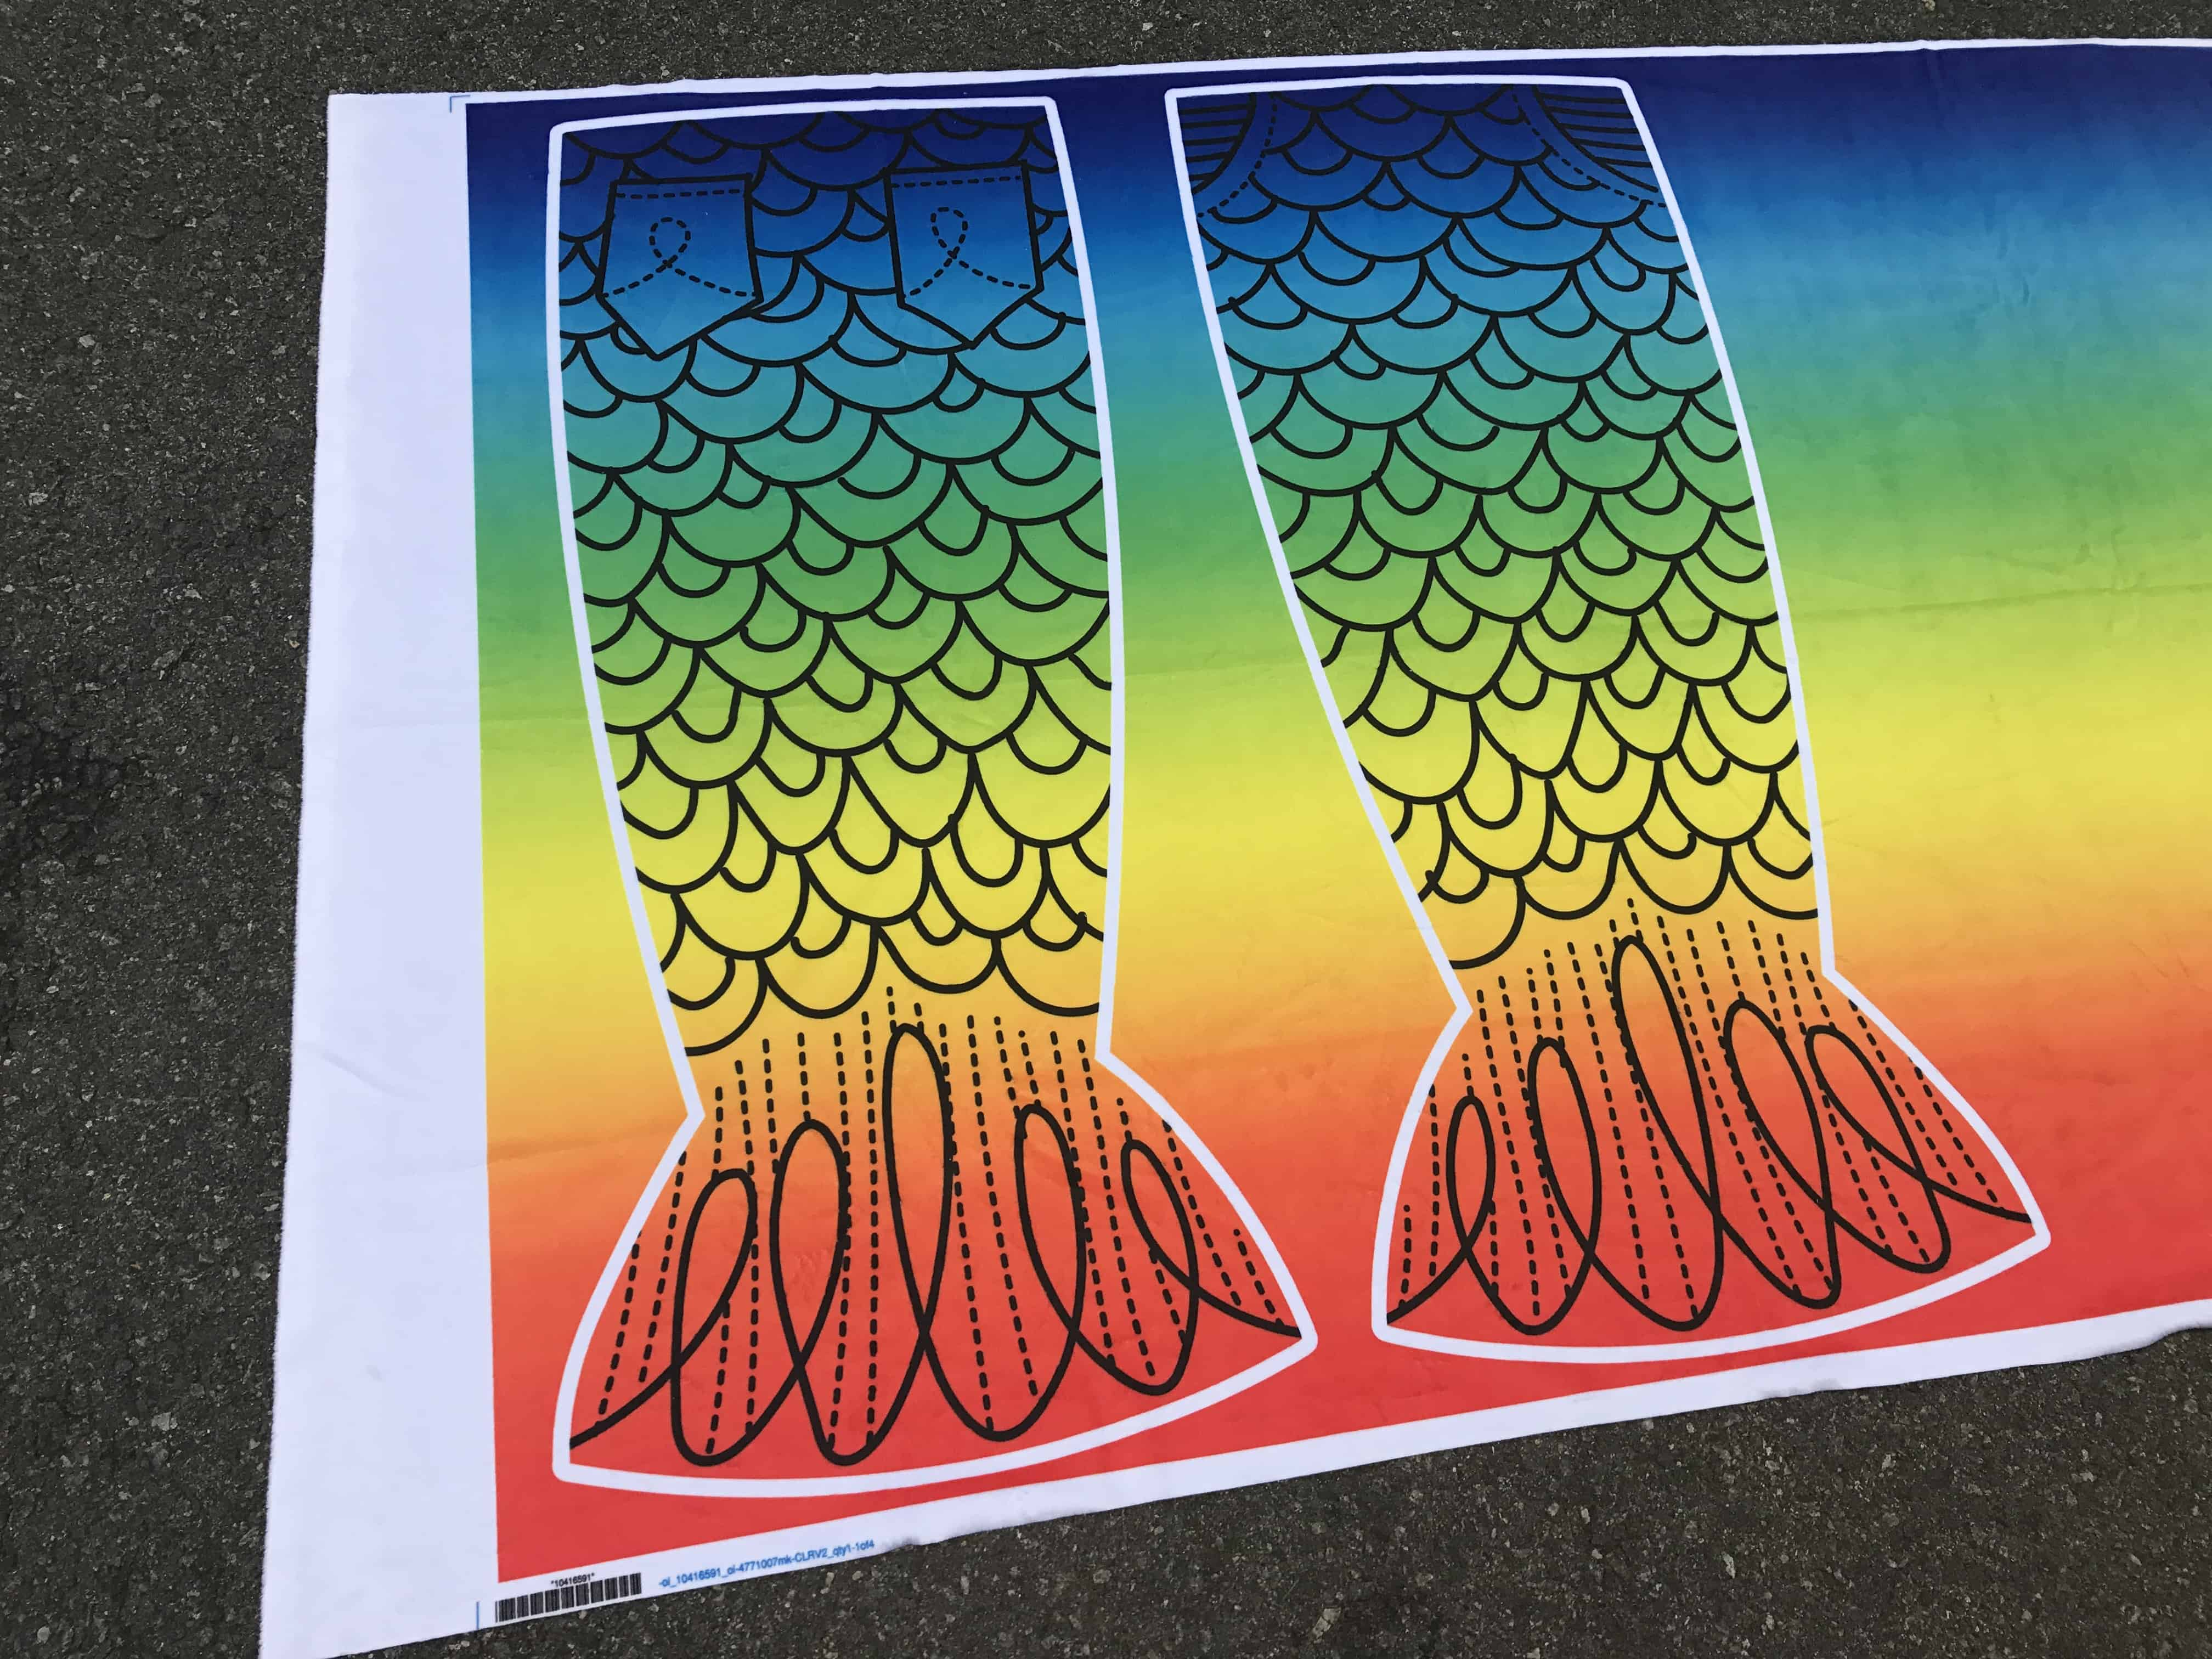 Rainbow minky is the perfect fabric for a mermaid tail project | Spoonflower Blog